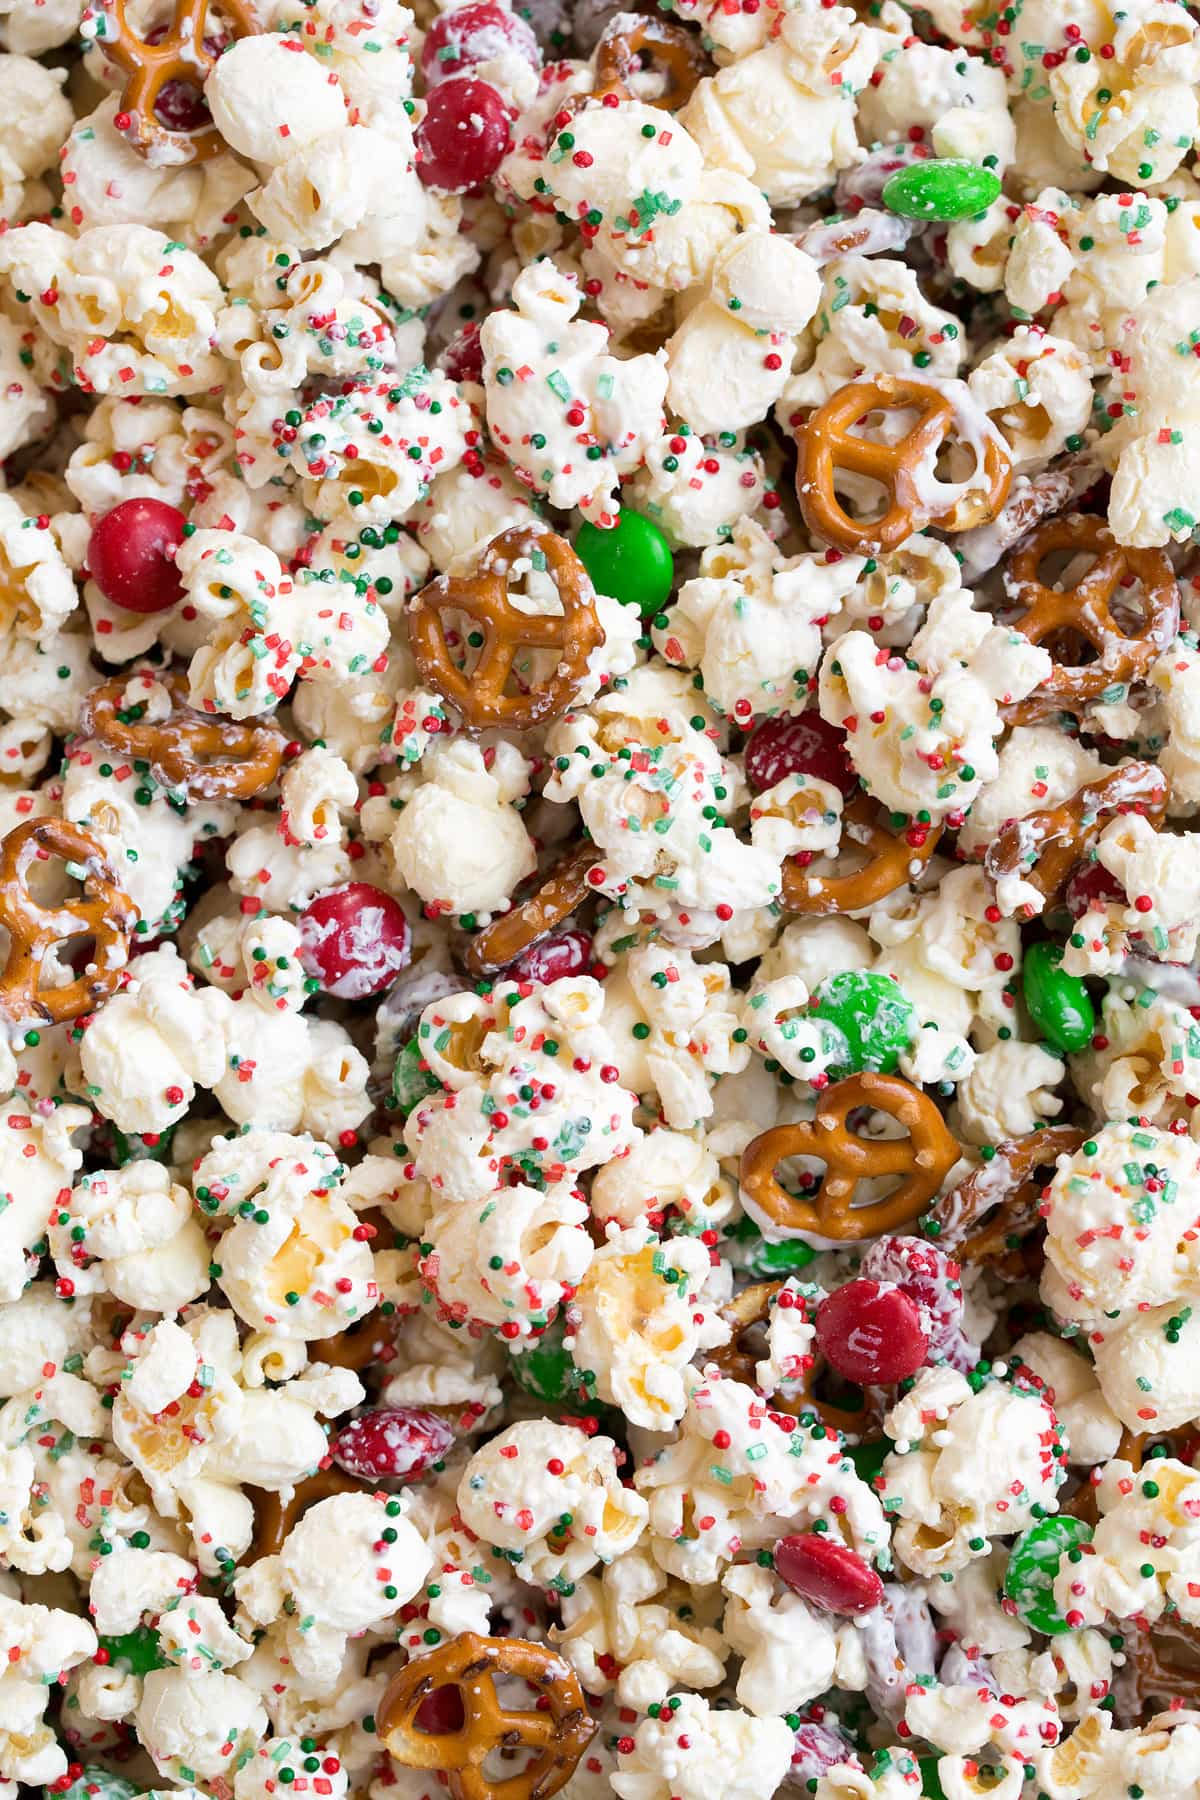 Close up image of white chocolate coated popcorn with pretzels sprinkles and m and m's.